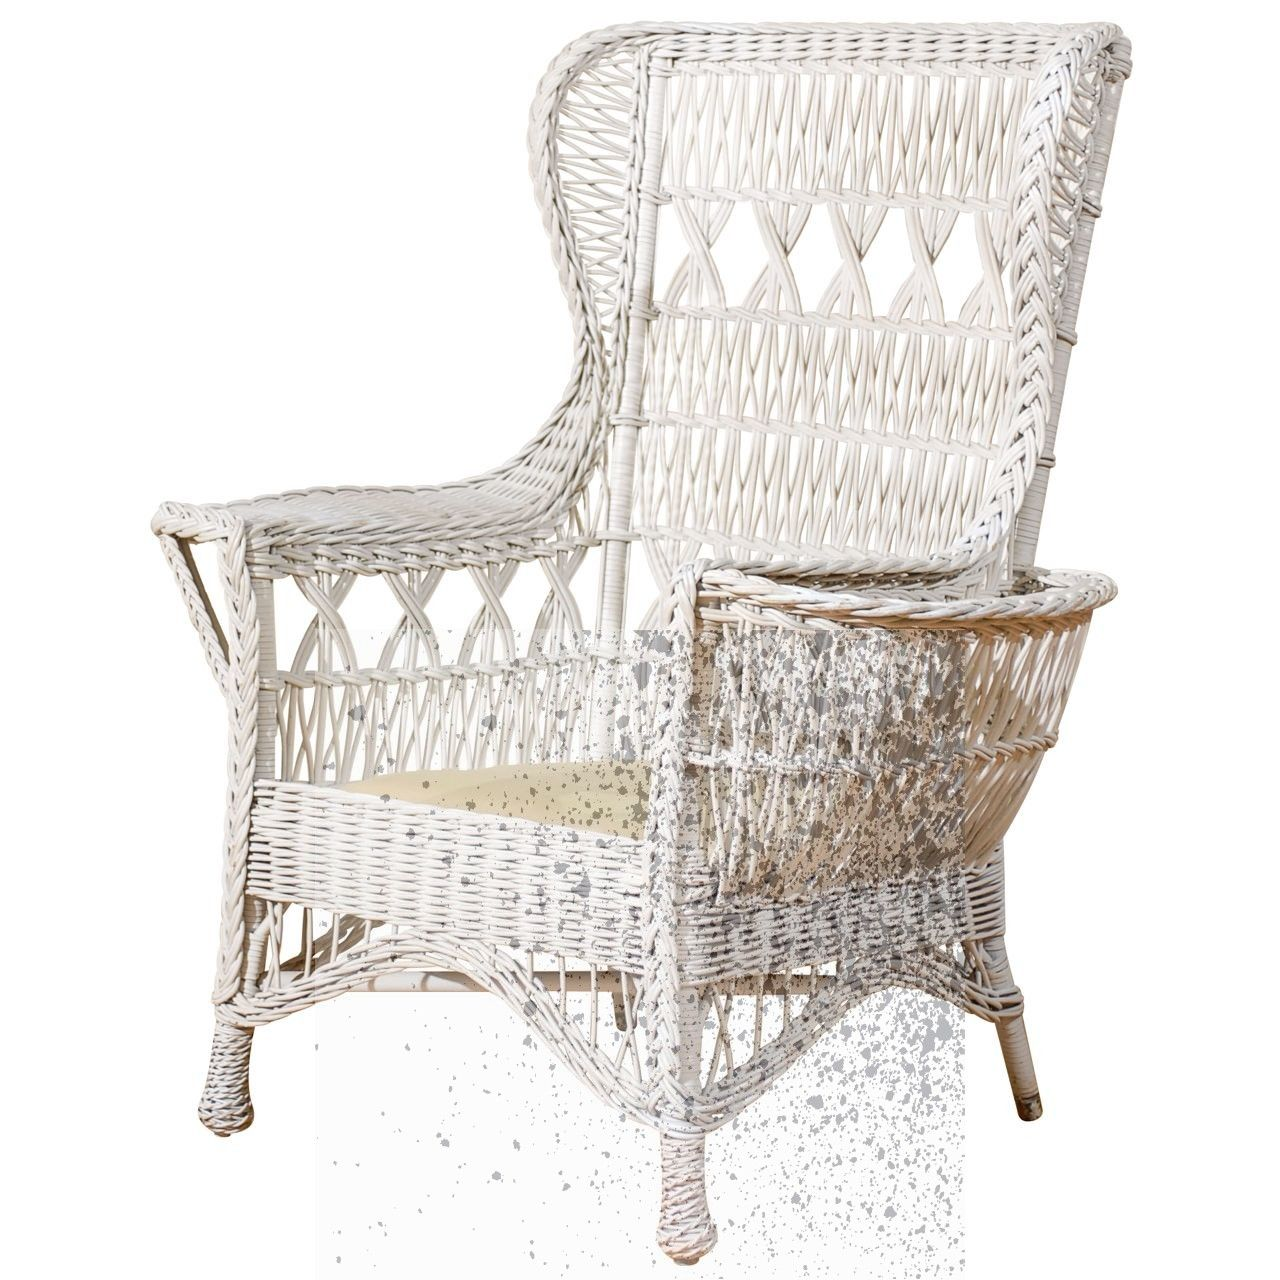 Easy And Cheap Useful Ideas: Vintage Wicker French Country ...